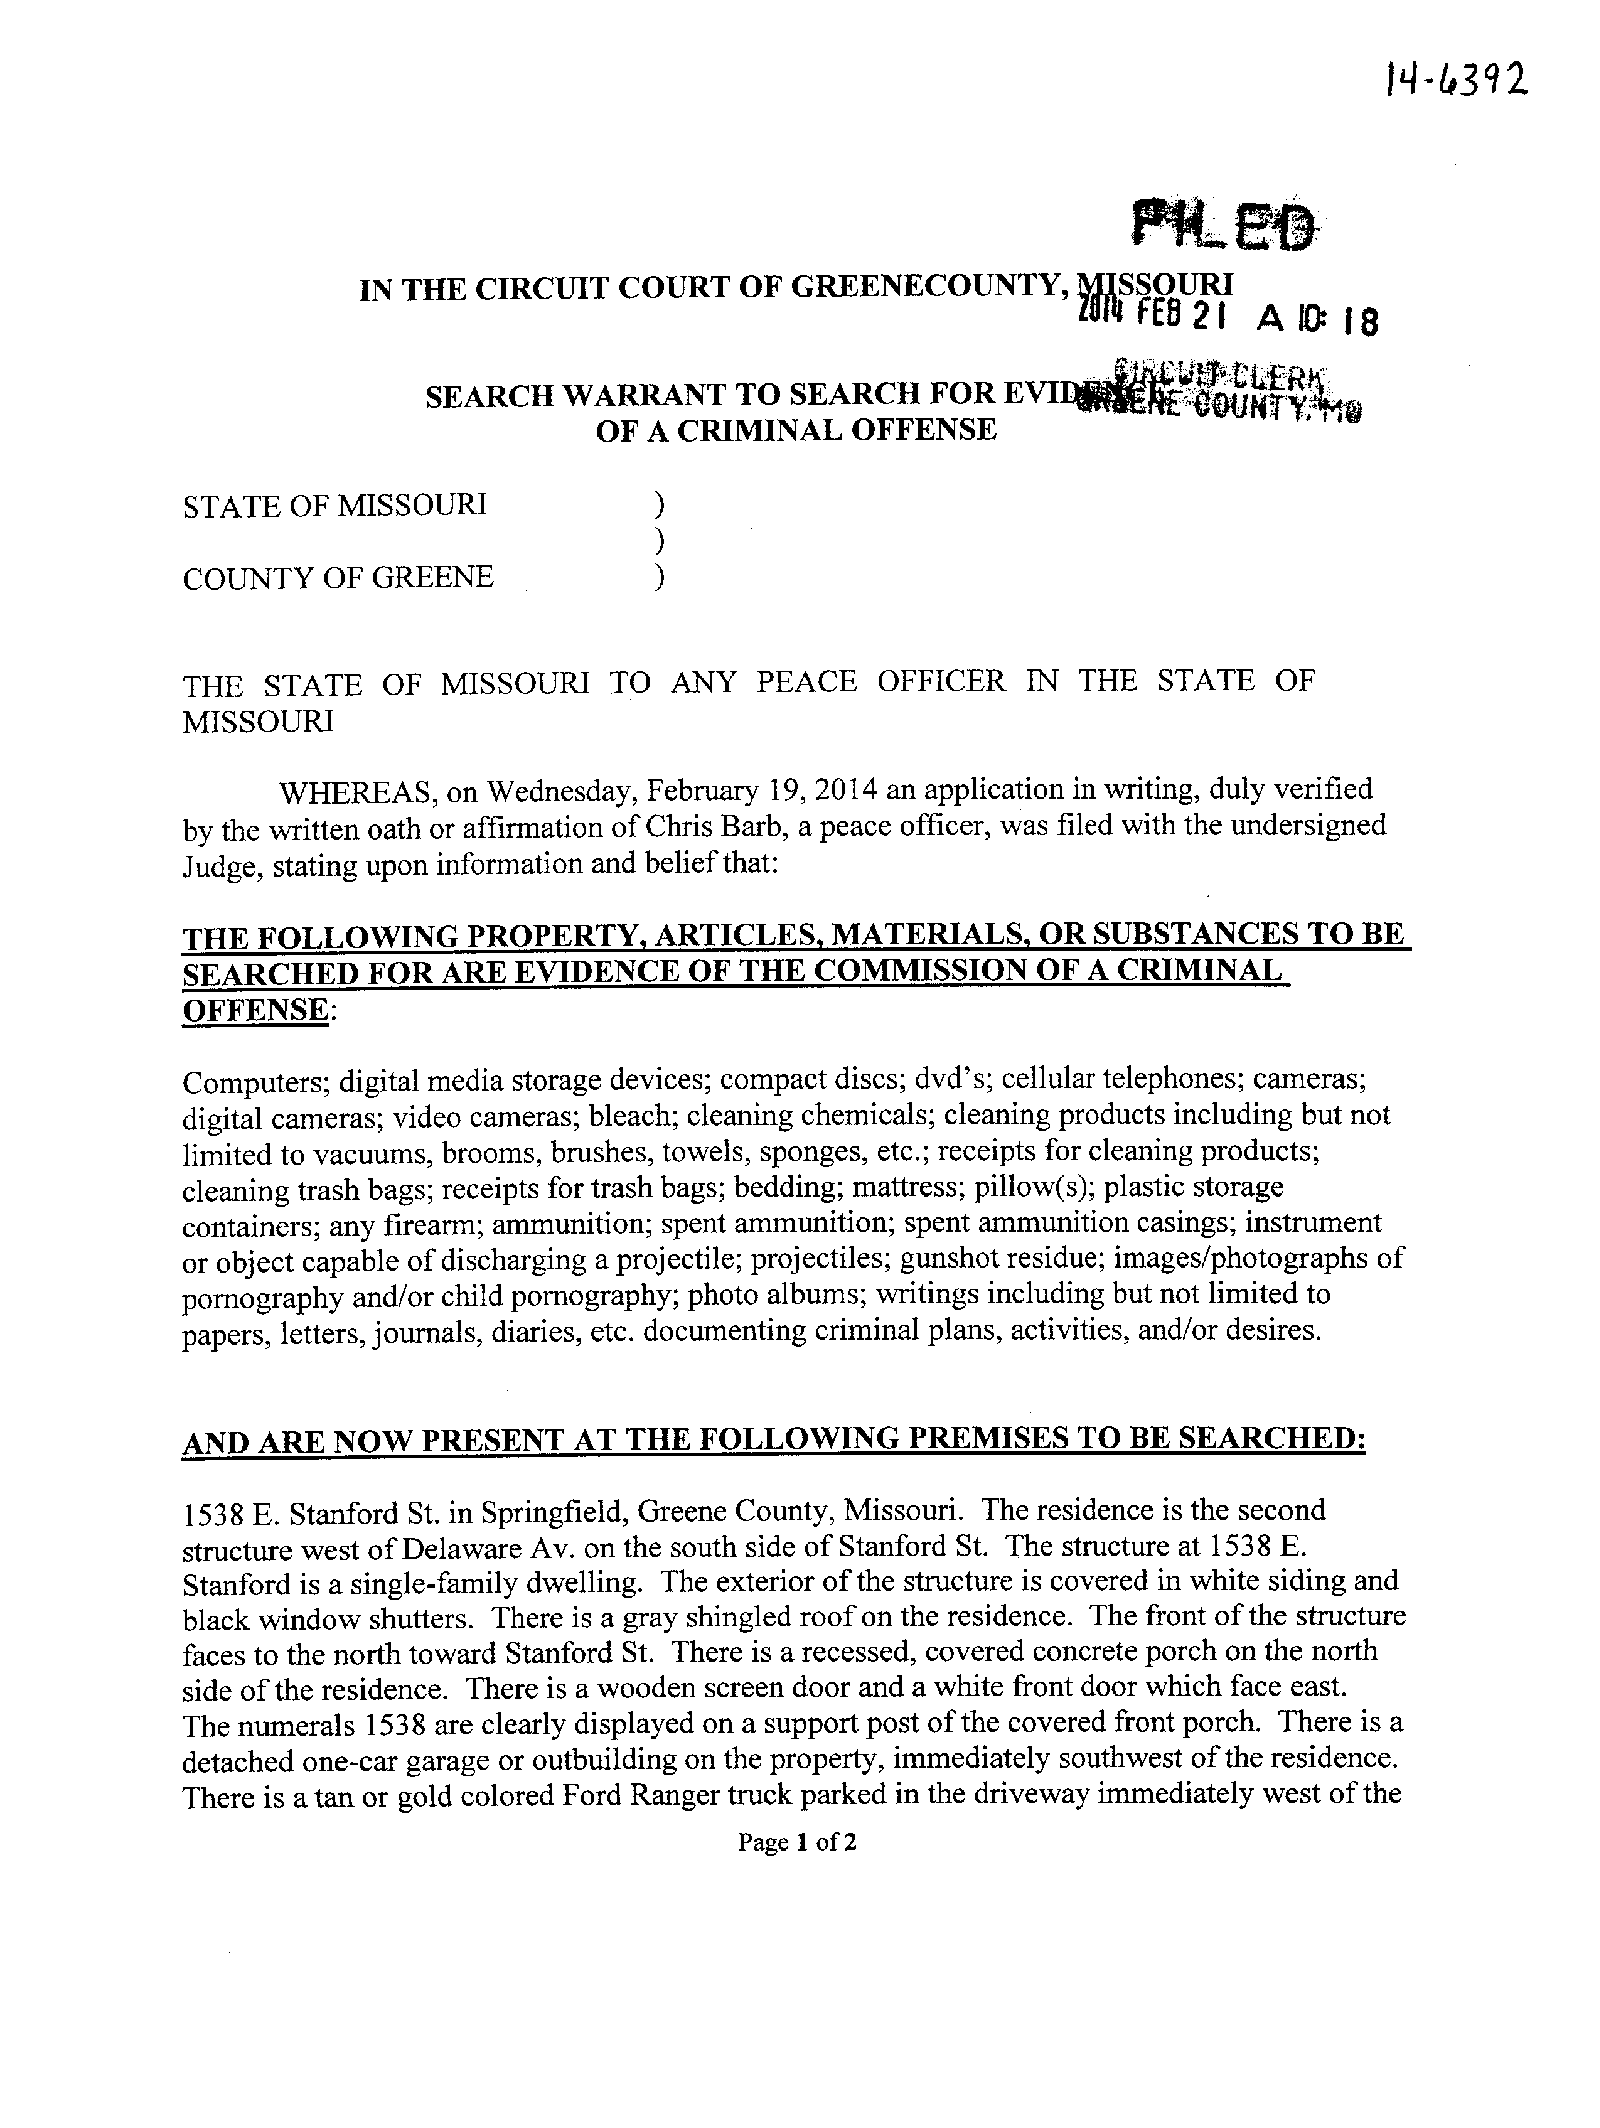 Copy of Search Warrant Return06.png